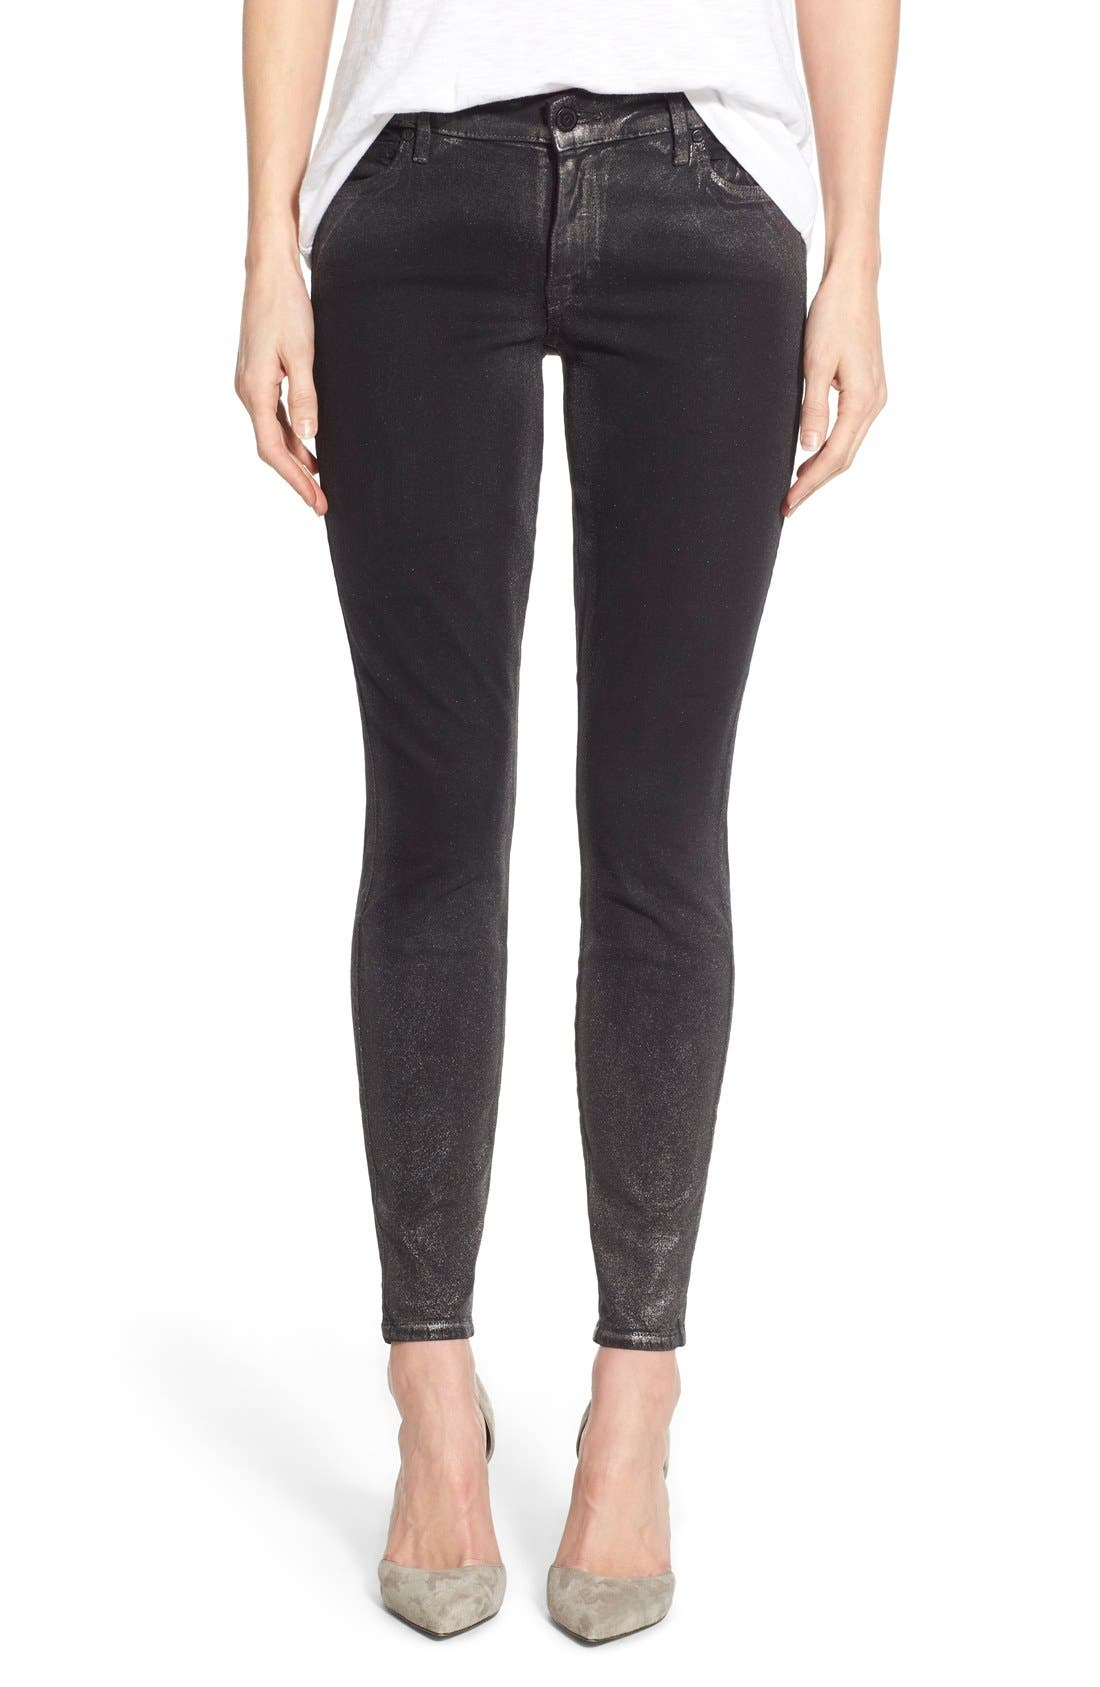 Main Image - CJ by Cookie Johnson 'Wisdom' Brushed Foil Skinny Jeans (Pewter)